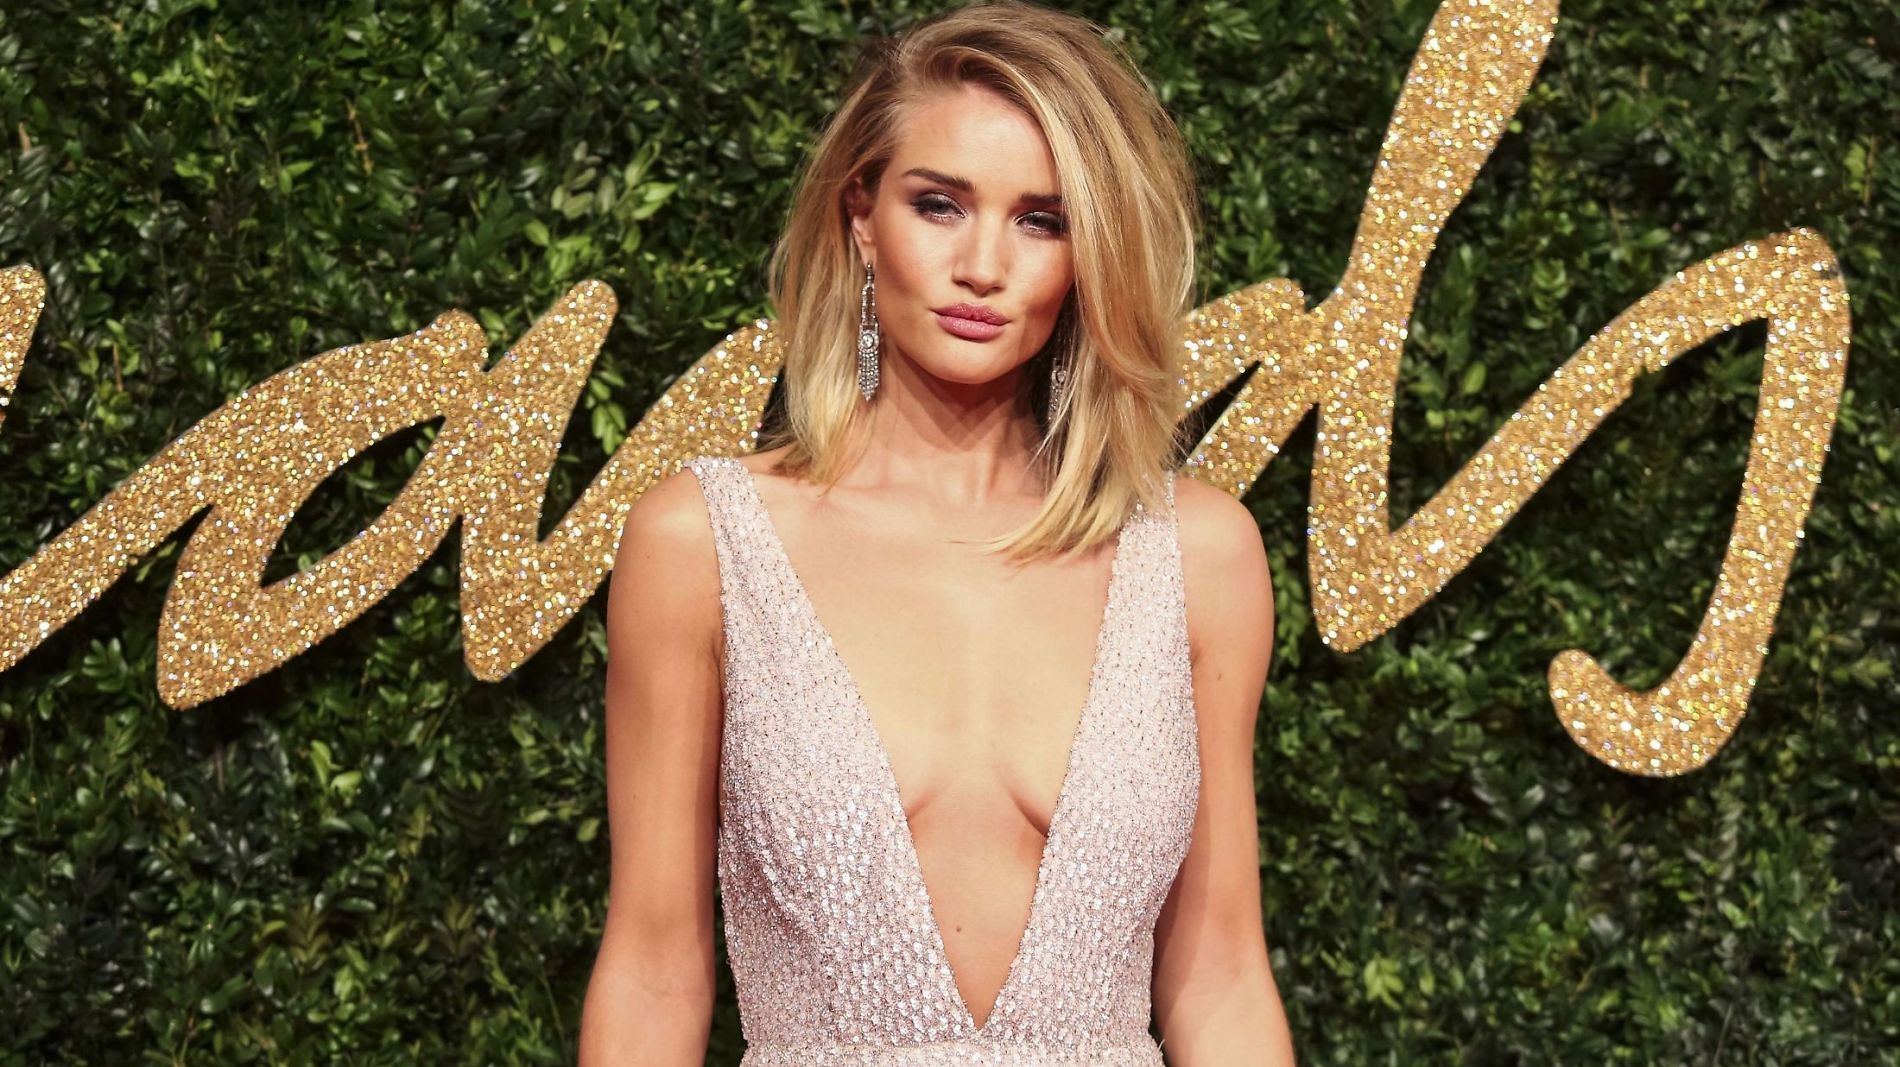 VOLUMDRONNINGEN: Vi drømmer om den fantastiske boben til Rosie Huntington-Whiteley. Her på British Fashion Awards. Foto: NTB Scanpix